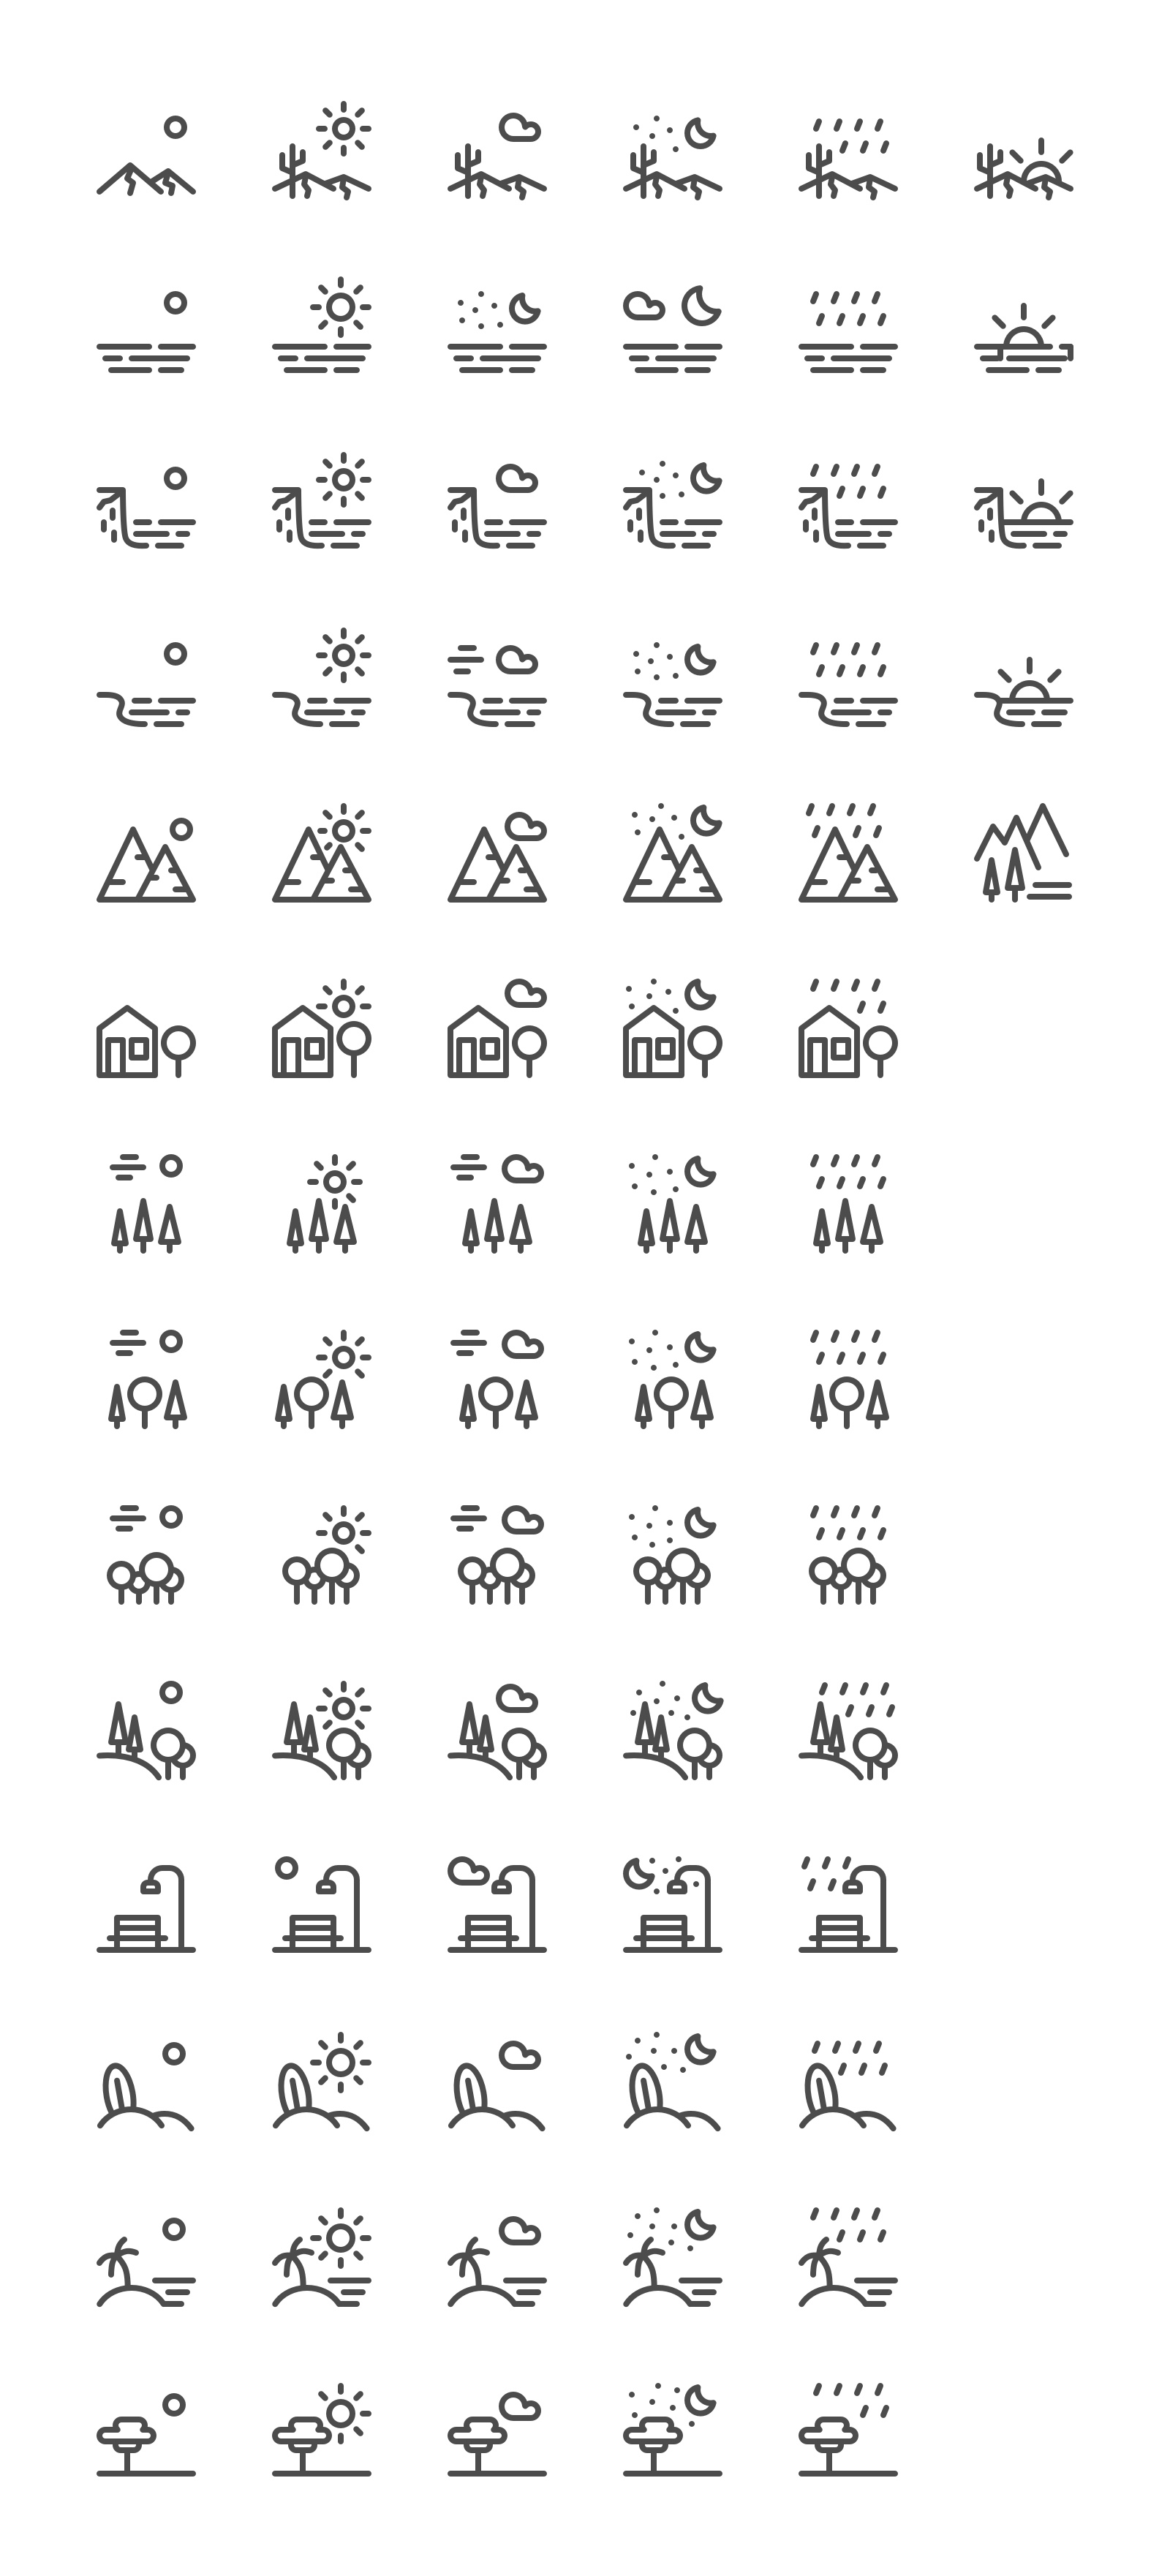 The full Landscapes Icon Set